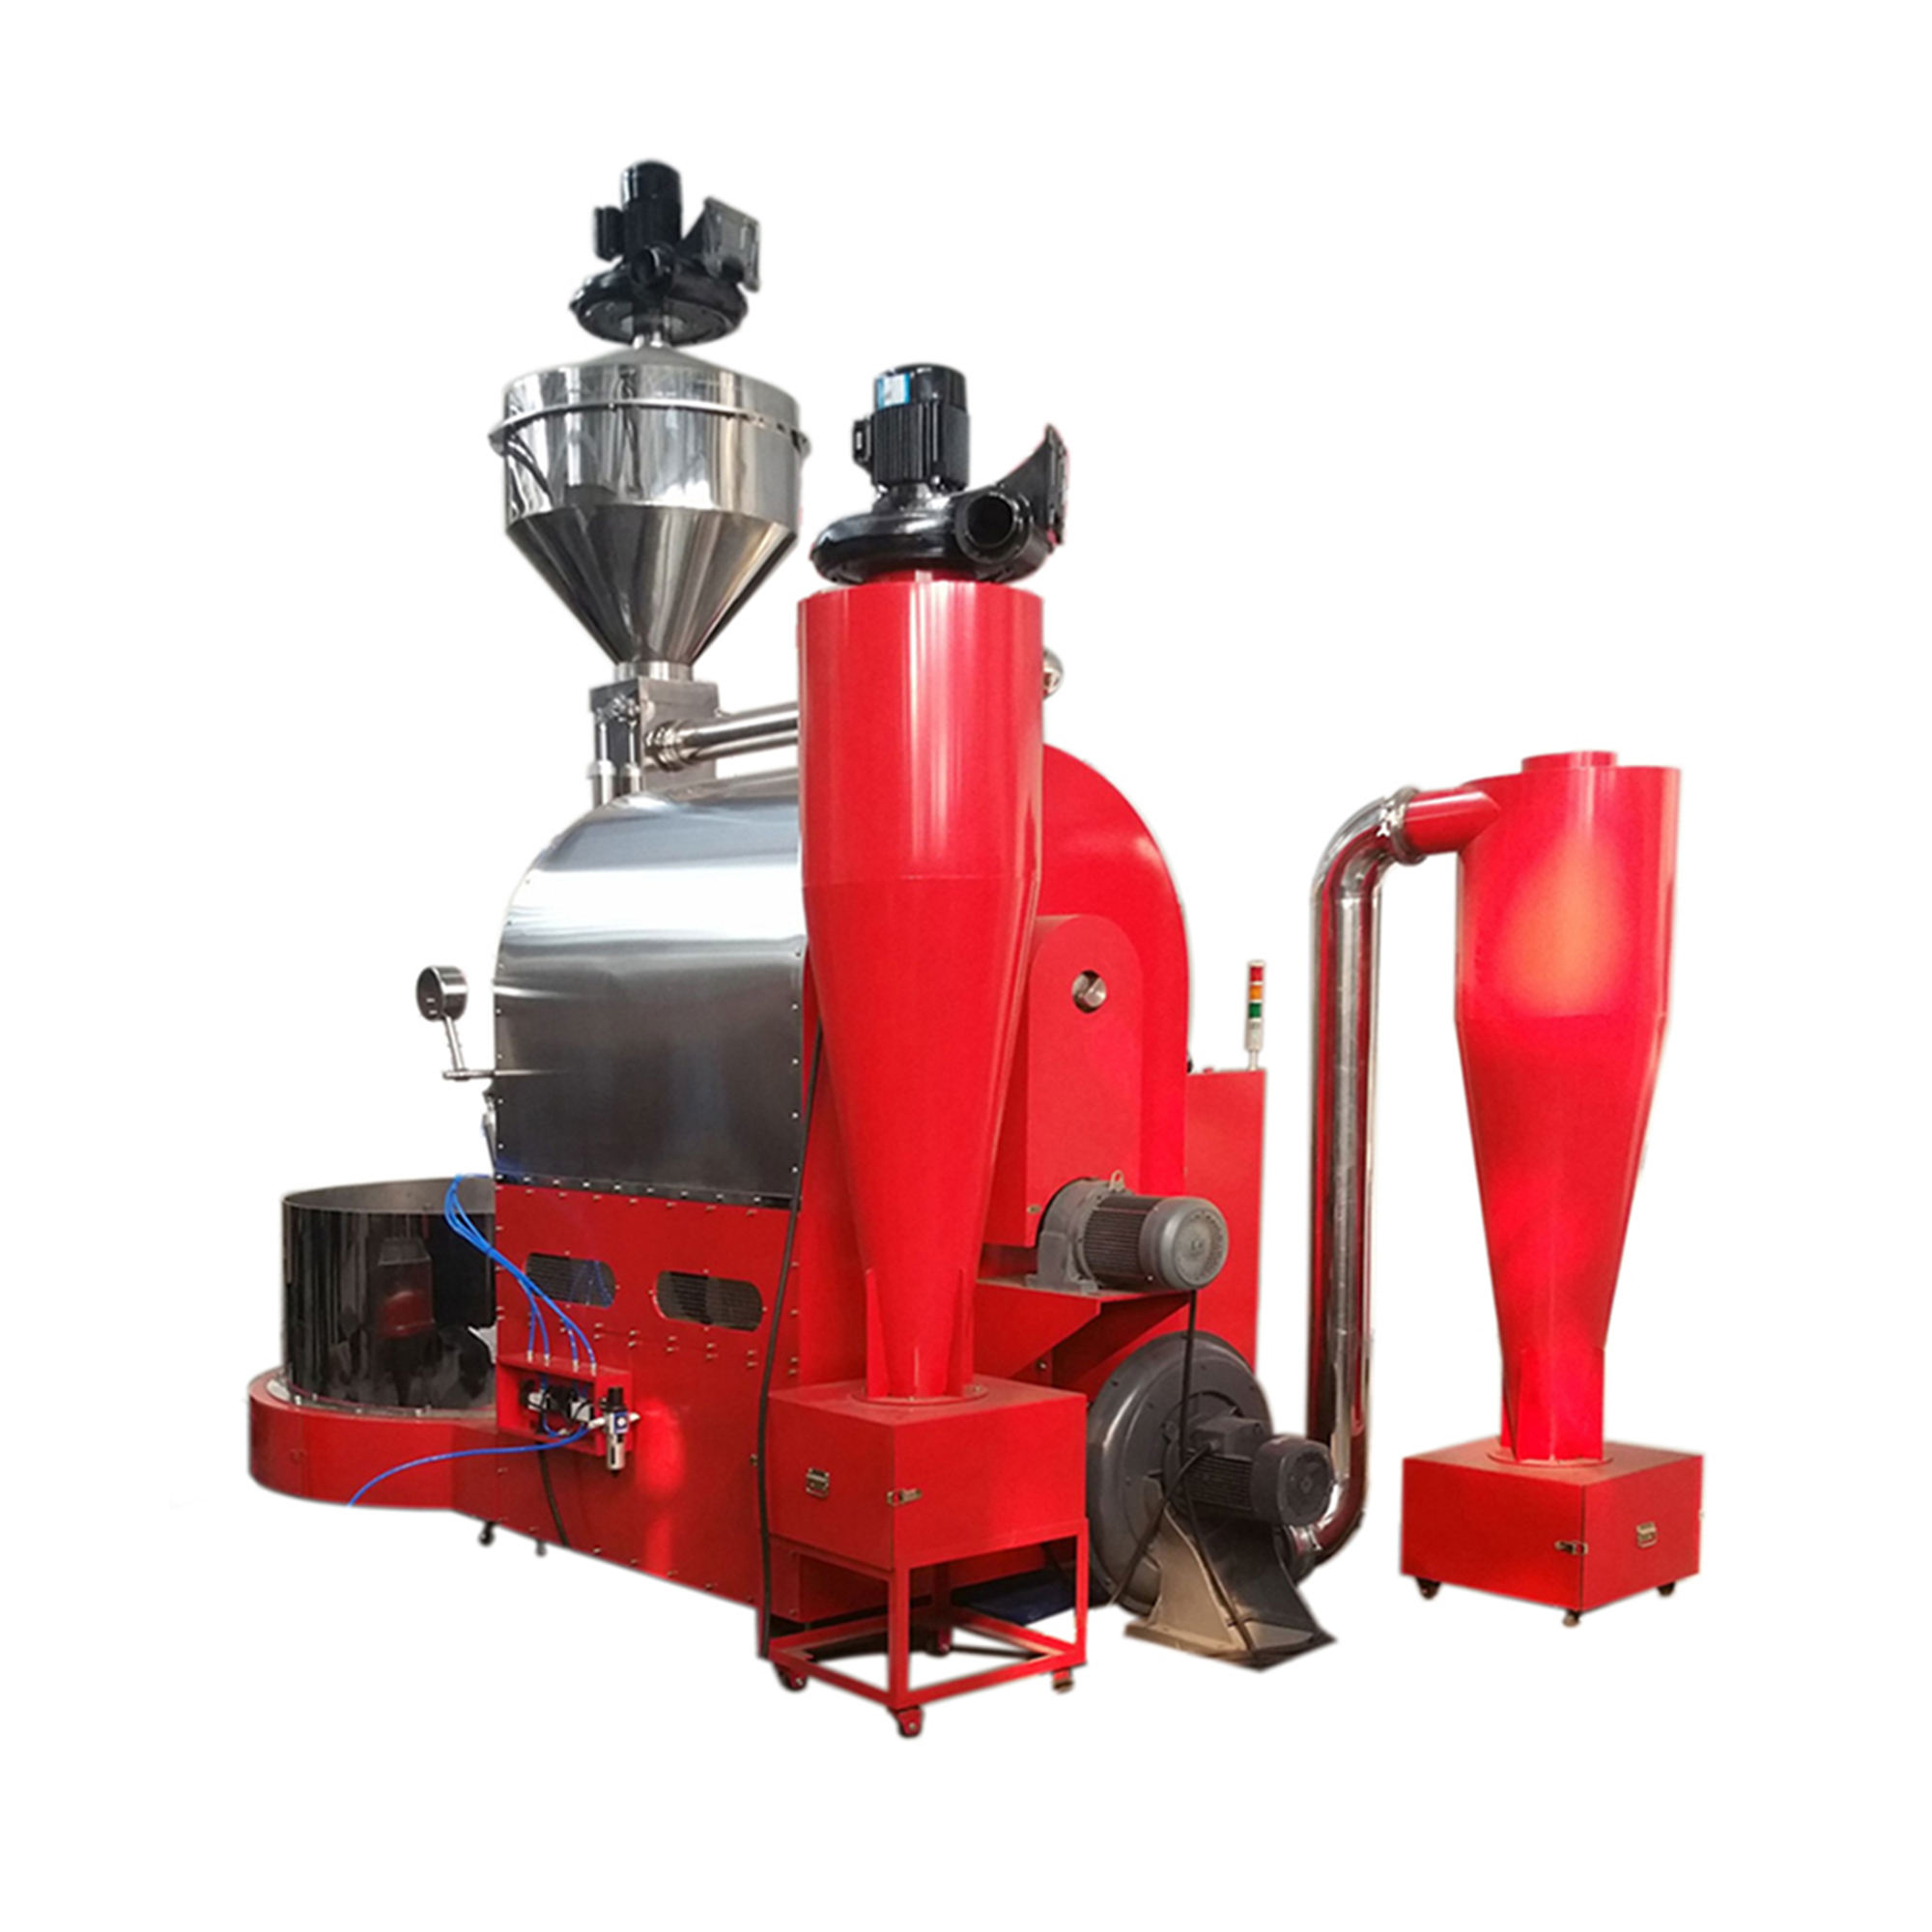 malaysia harga bidele industrial coffee roaster machine 280 300 kilos hora ceroffee roasting coffee machine indonesia for sale